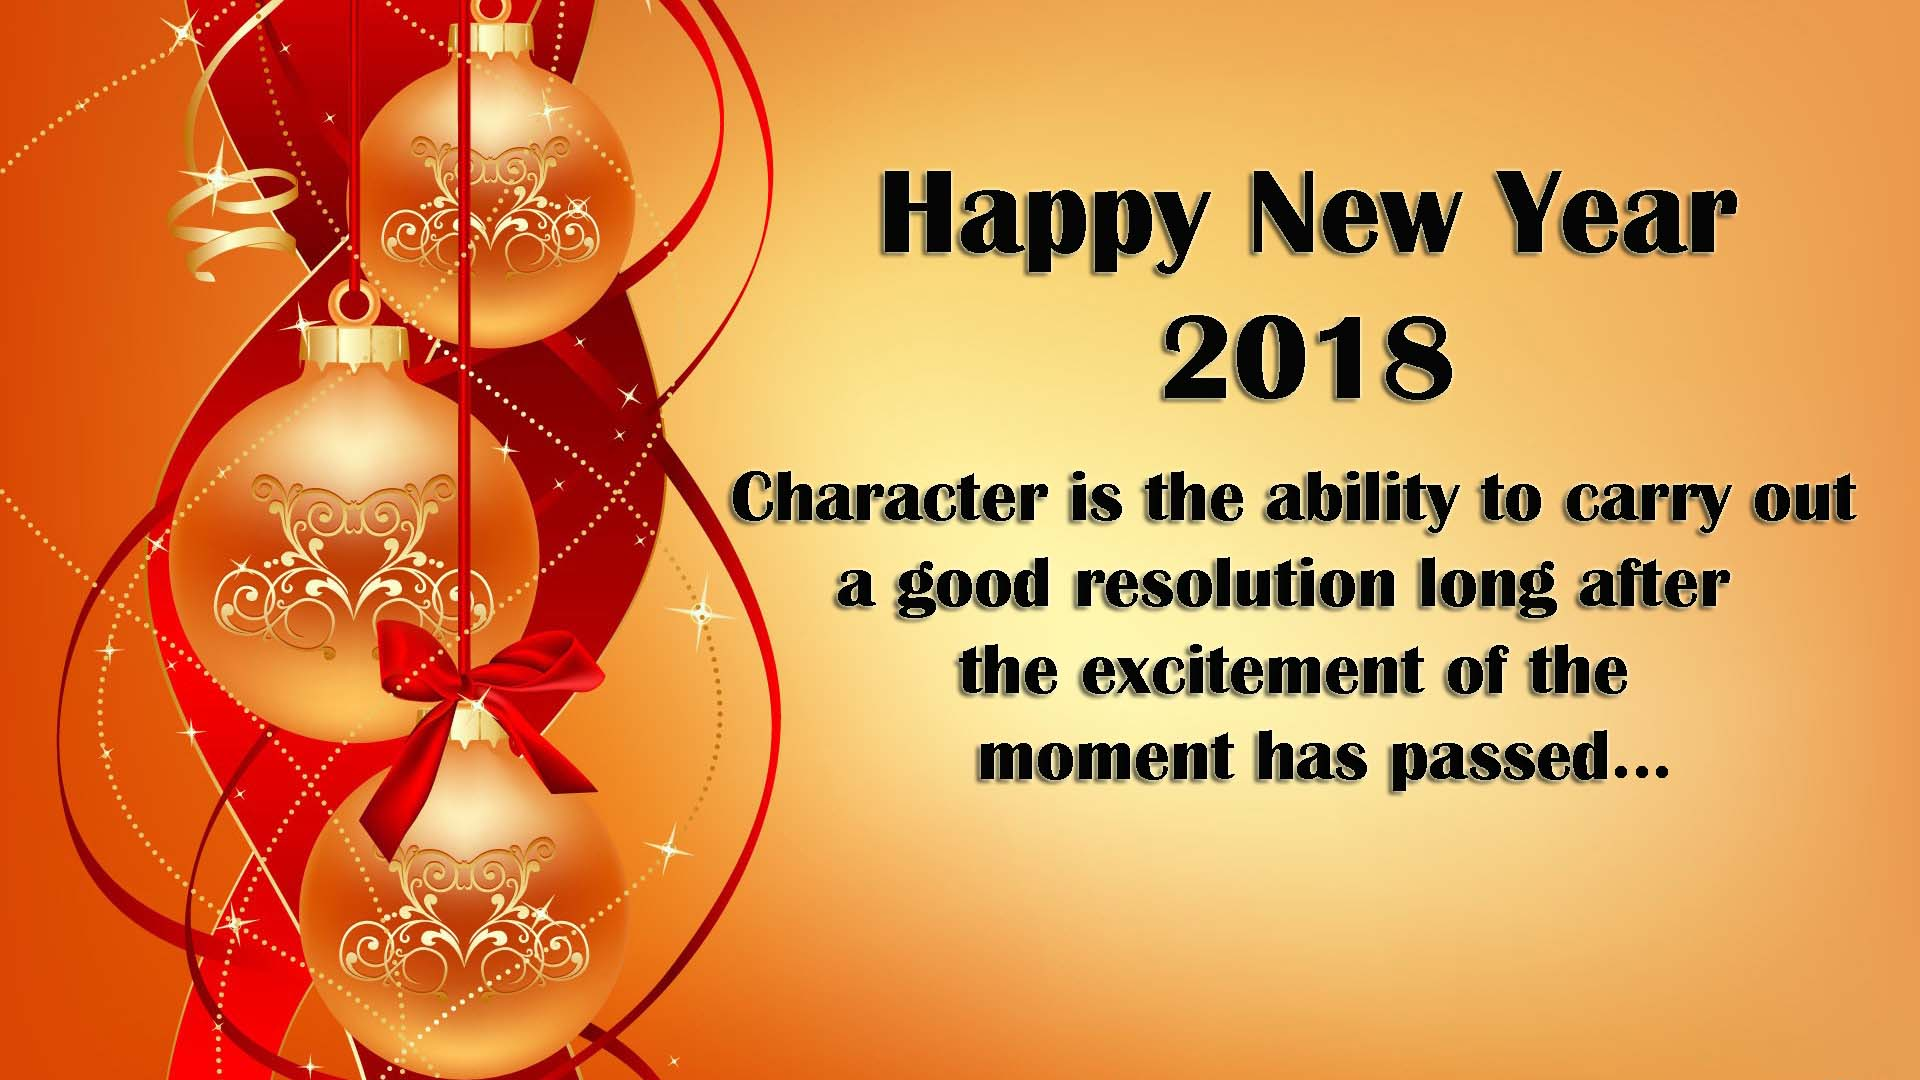 happy-new-year-2018-wallpapers-images-wishes-cards